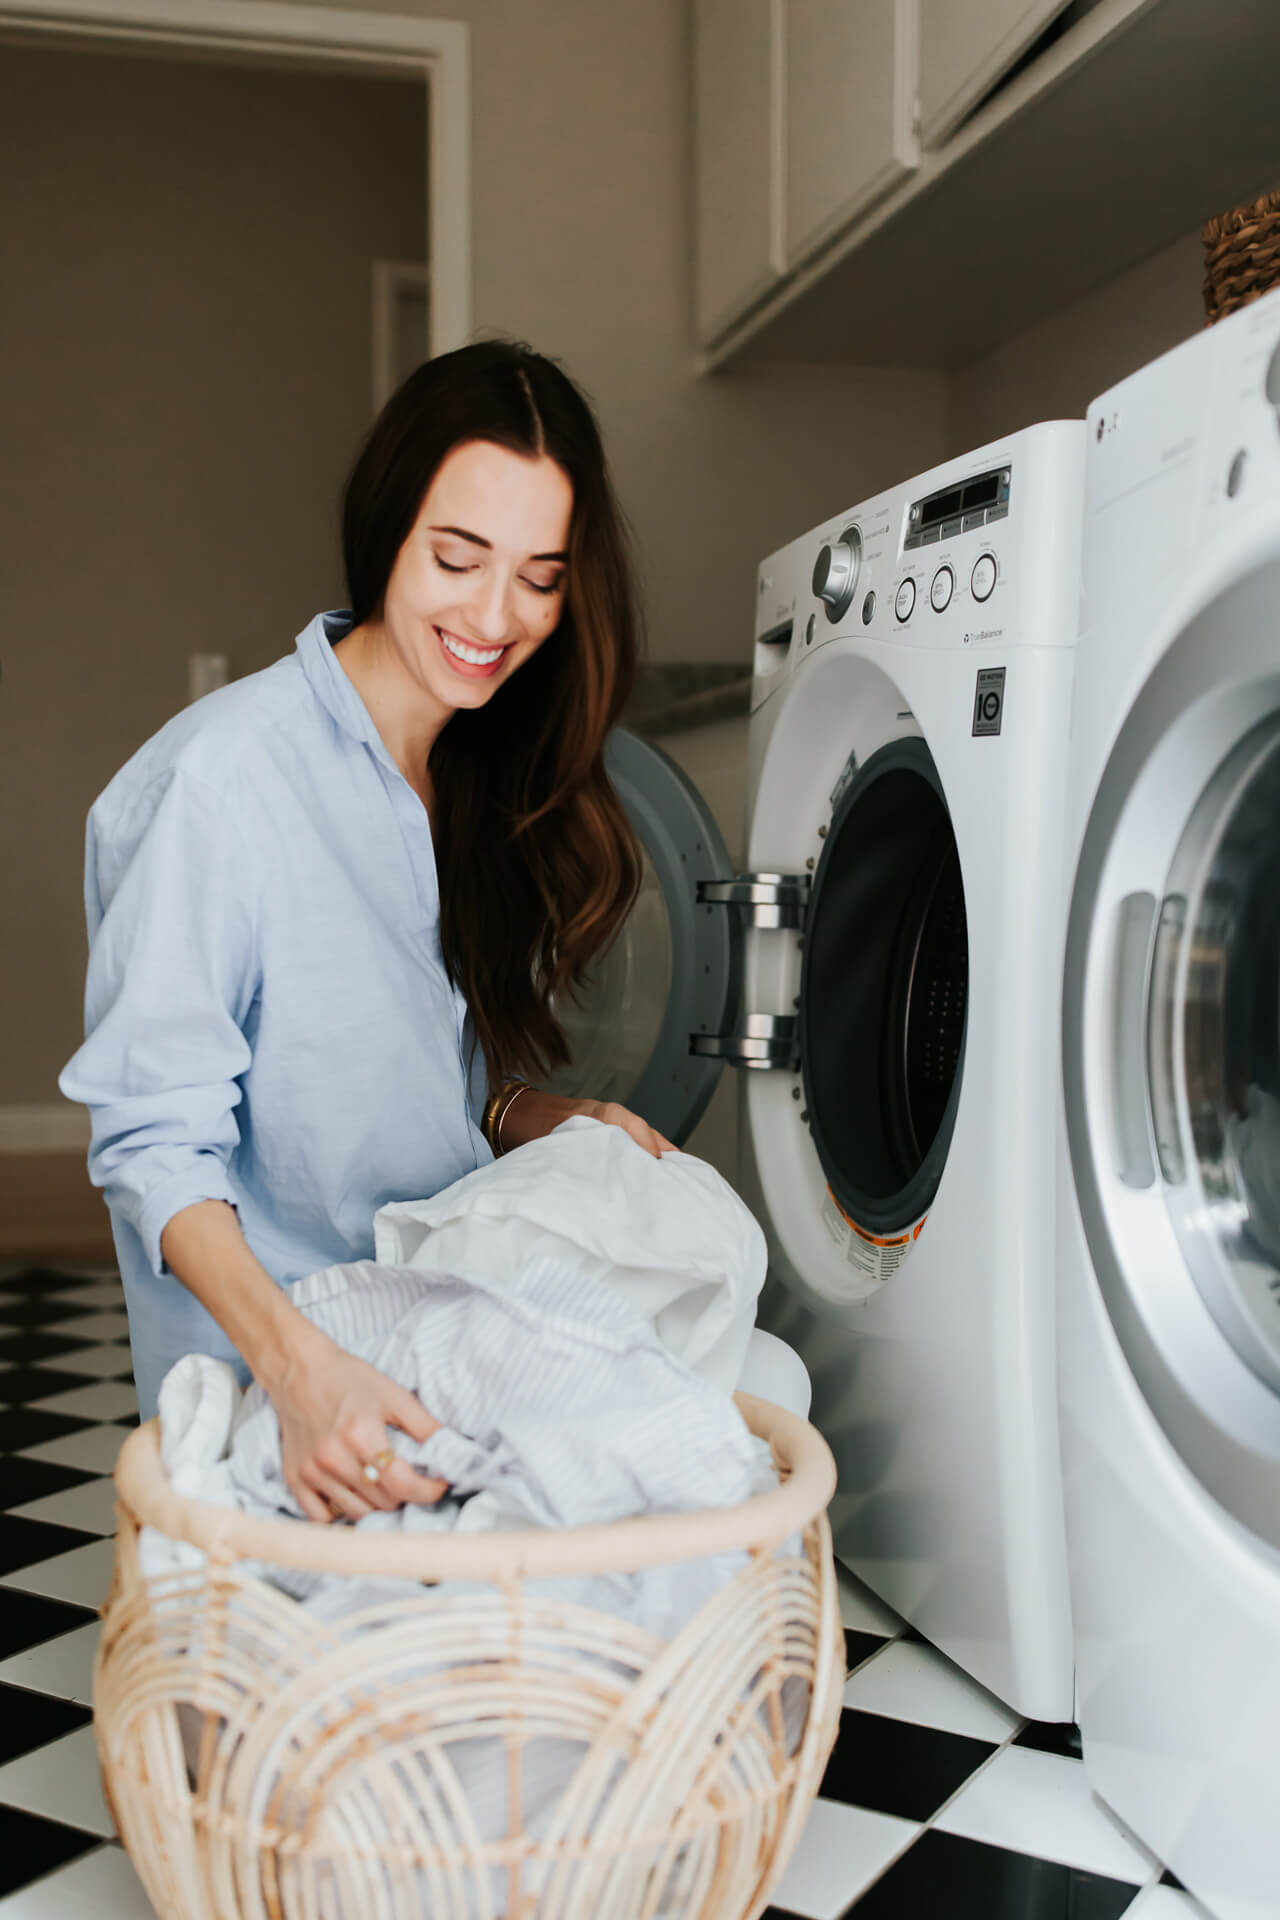 tip 1 for doing laundry, always wash cold